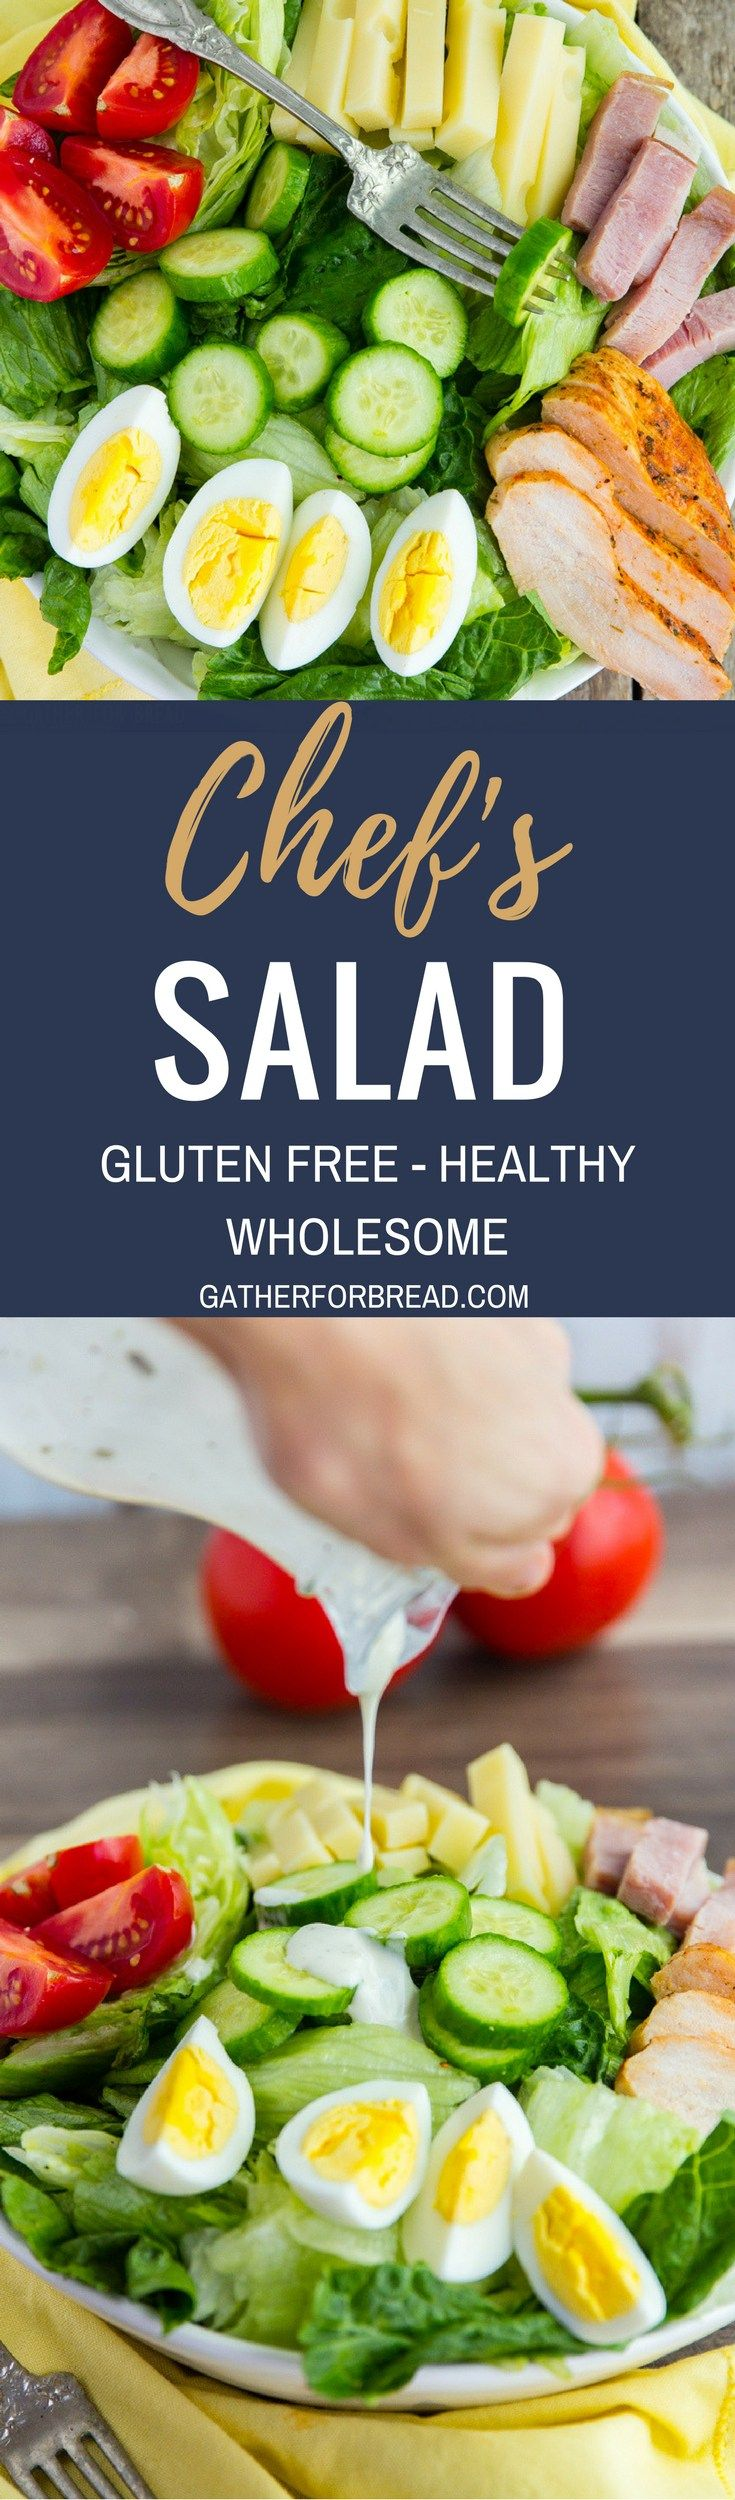 Chef's Salad Recipe - AD  Make homemade chef's salad with Romaine lettuce, ham, turkey and chopped vegetables. Delicious ingredients for an easy salad